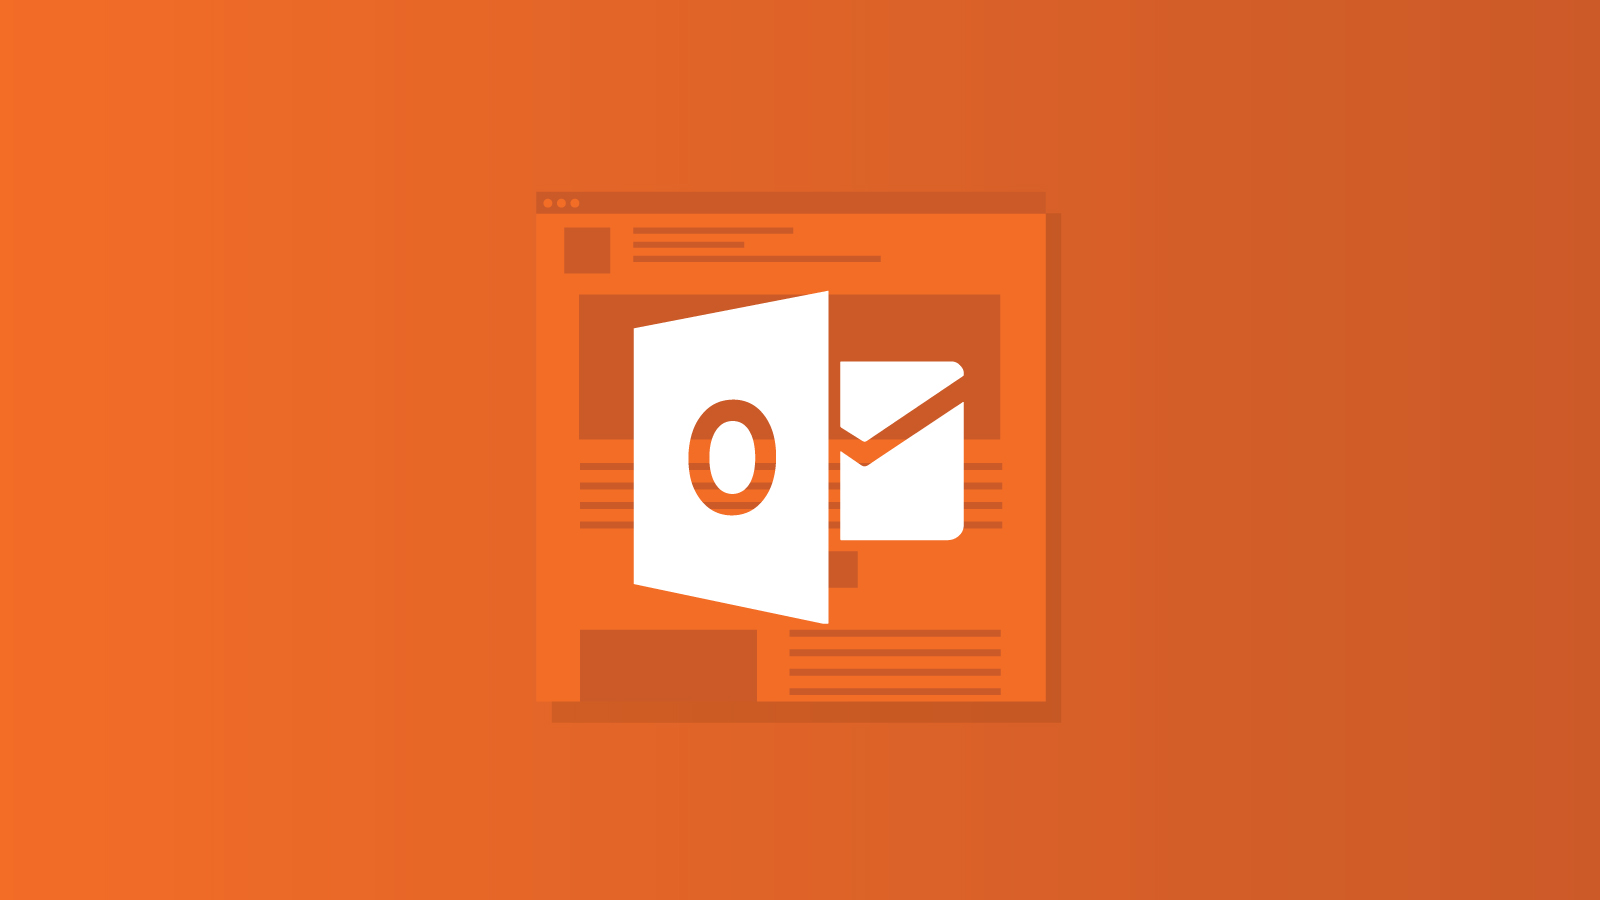 How To Code Html Emails For Outlook 2016 Email On Acid